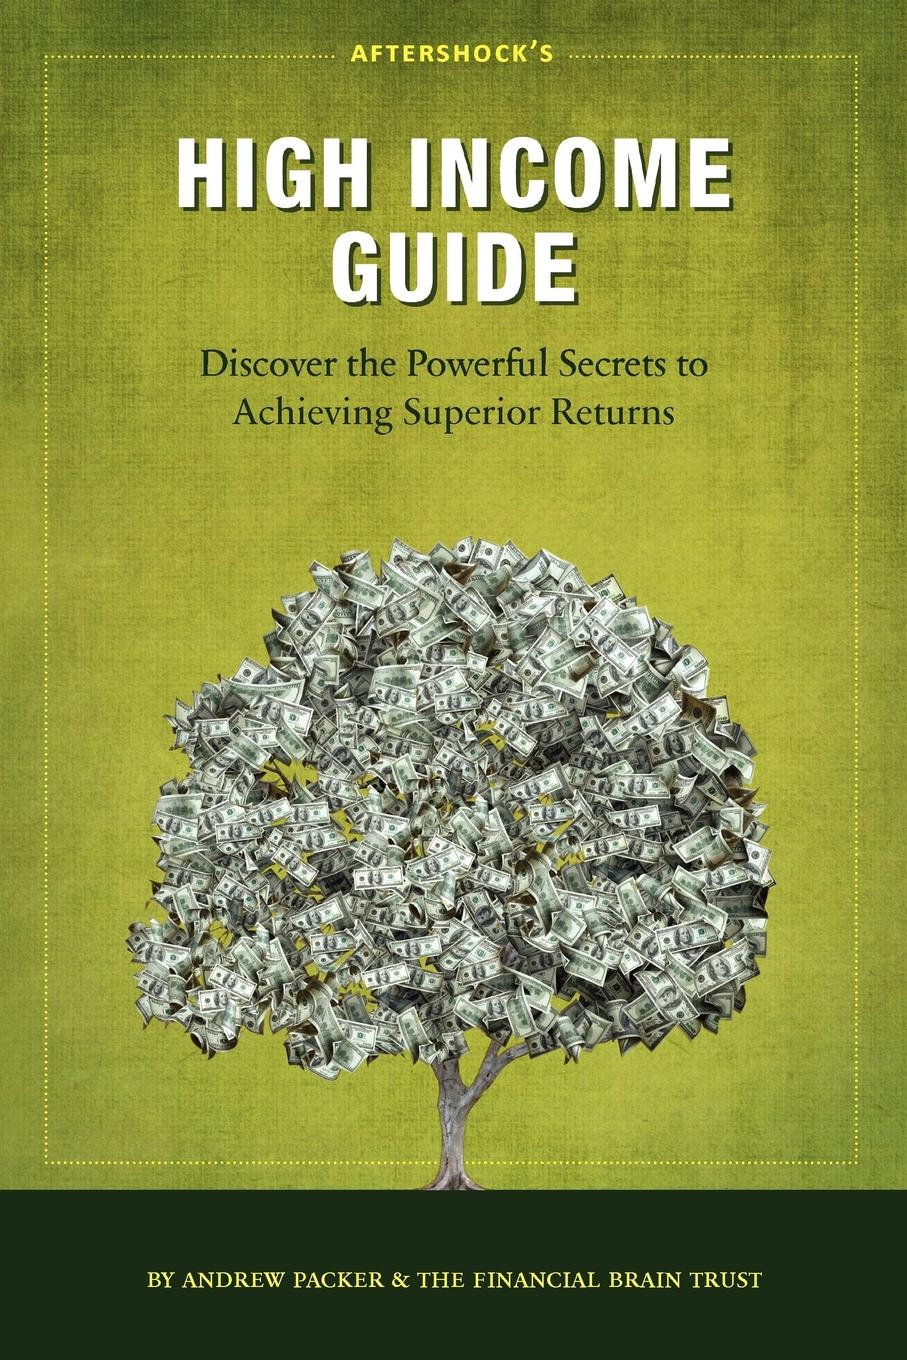 Aftershock's High Income Guide By: Andrew Packer